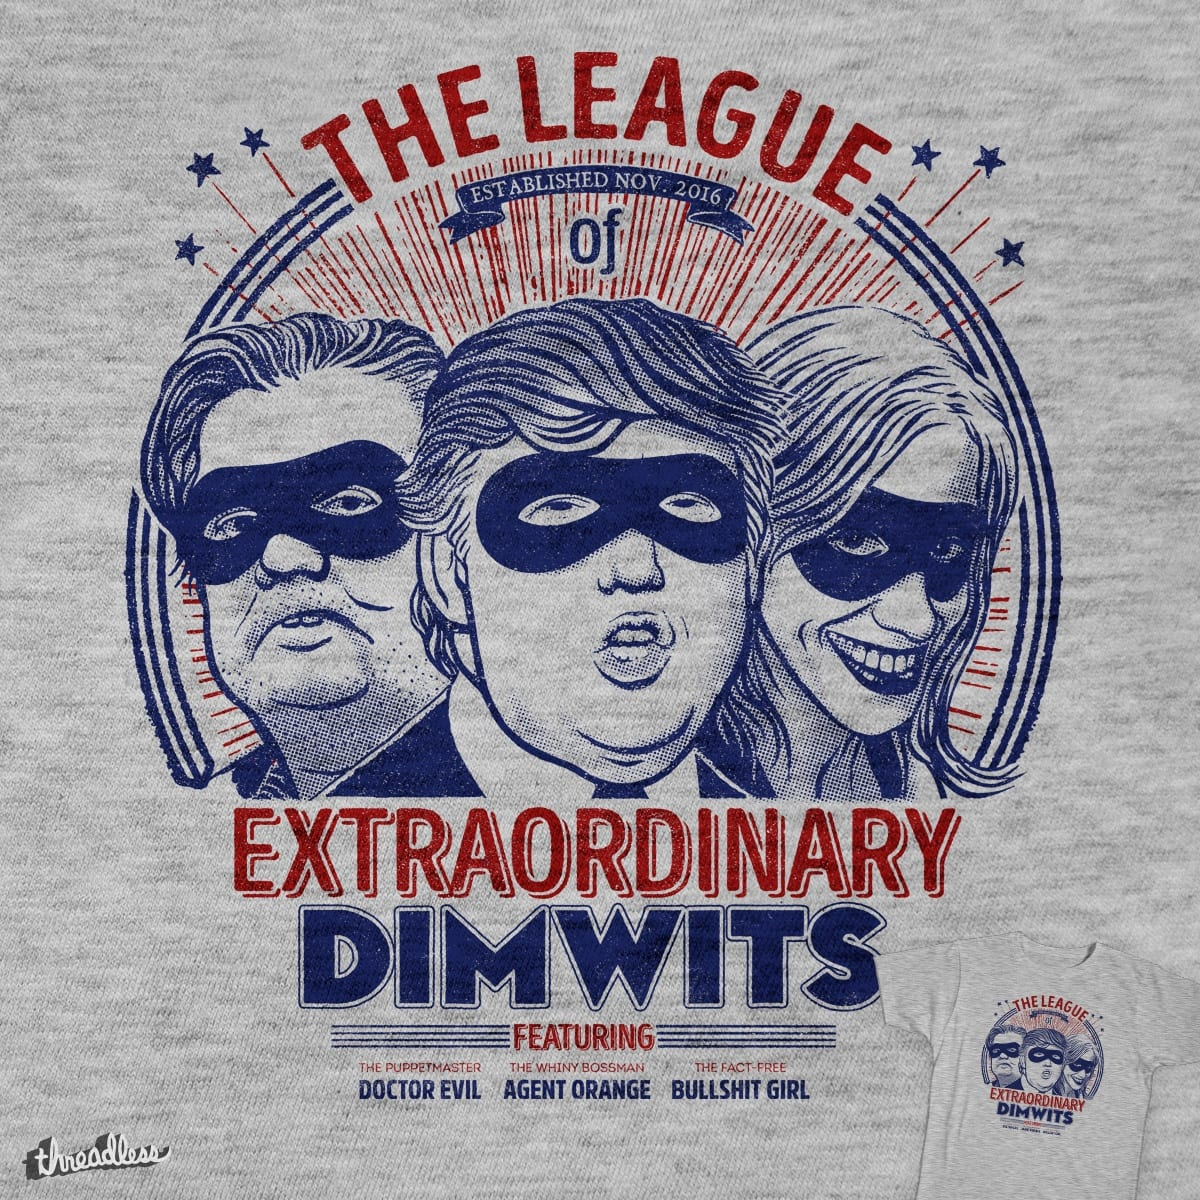 The Extraordinary League of Dimwits by v_calahan on Threadless